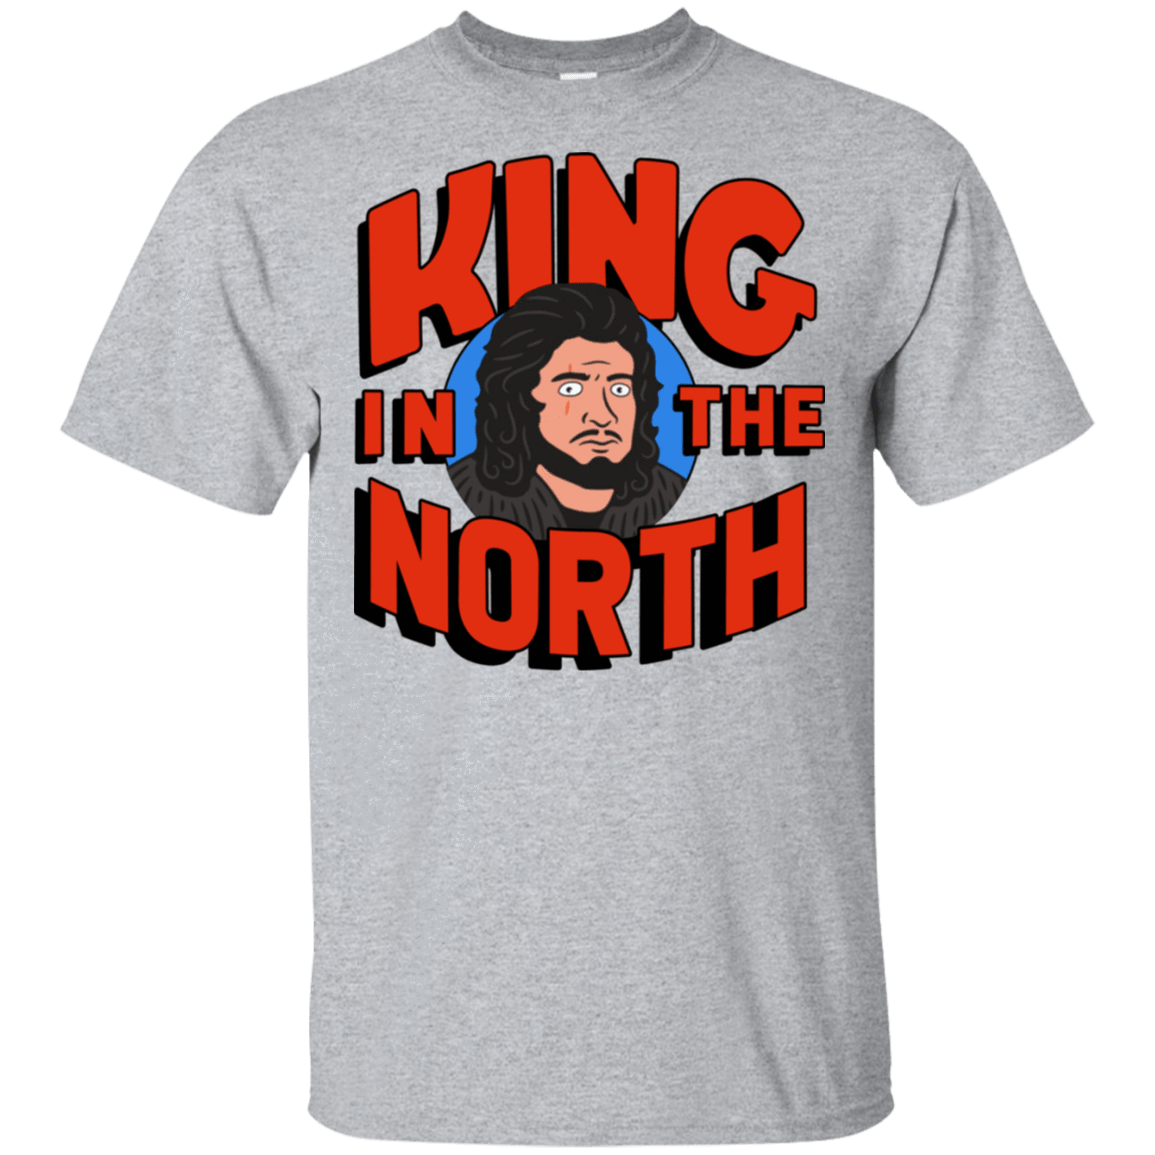 King In The North 22-115-73154811-254 - Tee Ript